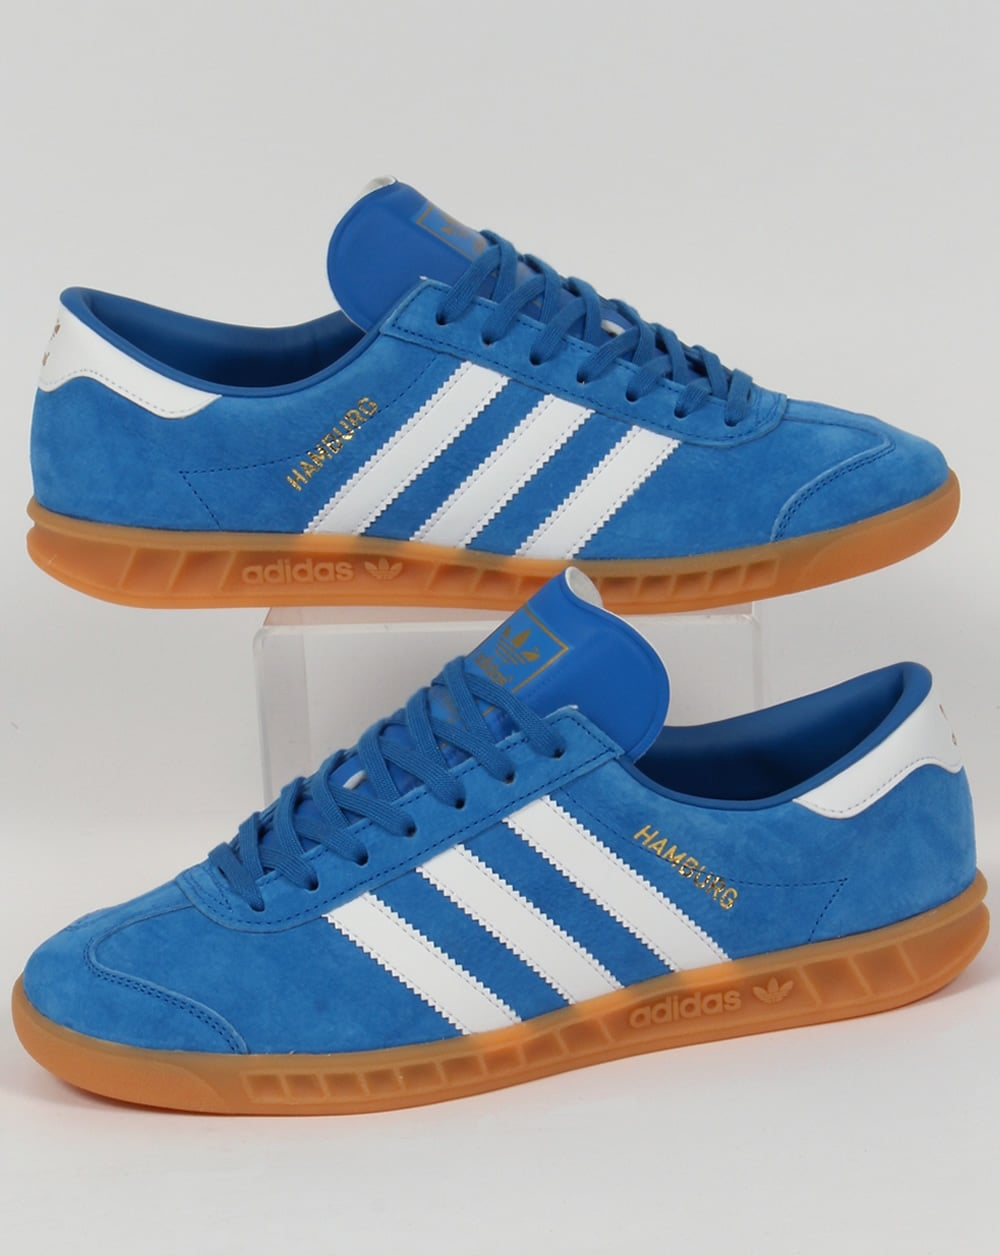 adidas Trainers Adidas Hamburg Trainers Bluebird Blue/White ...